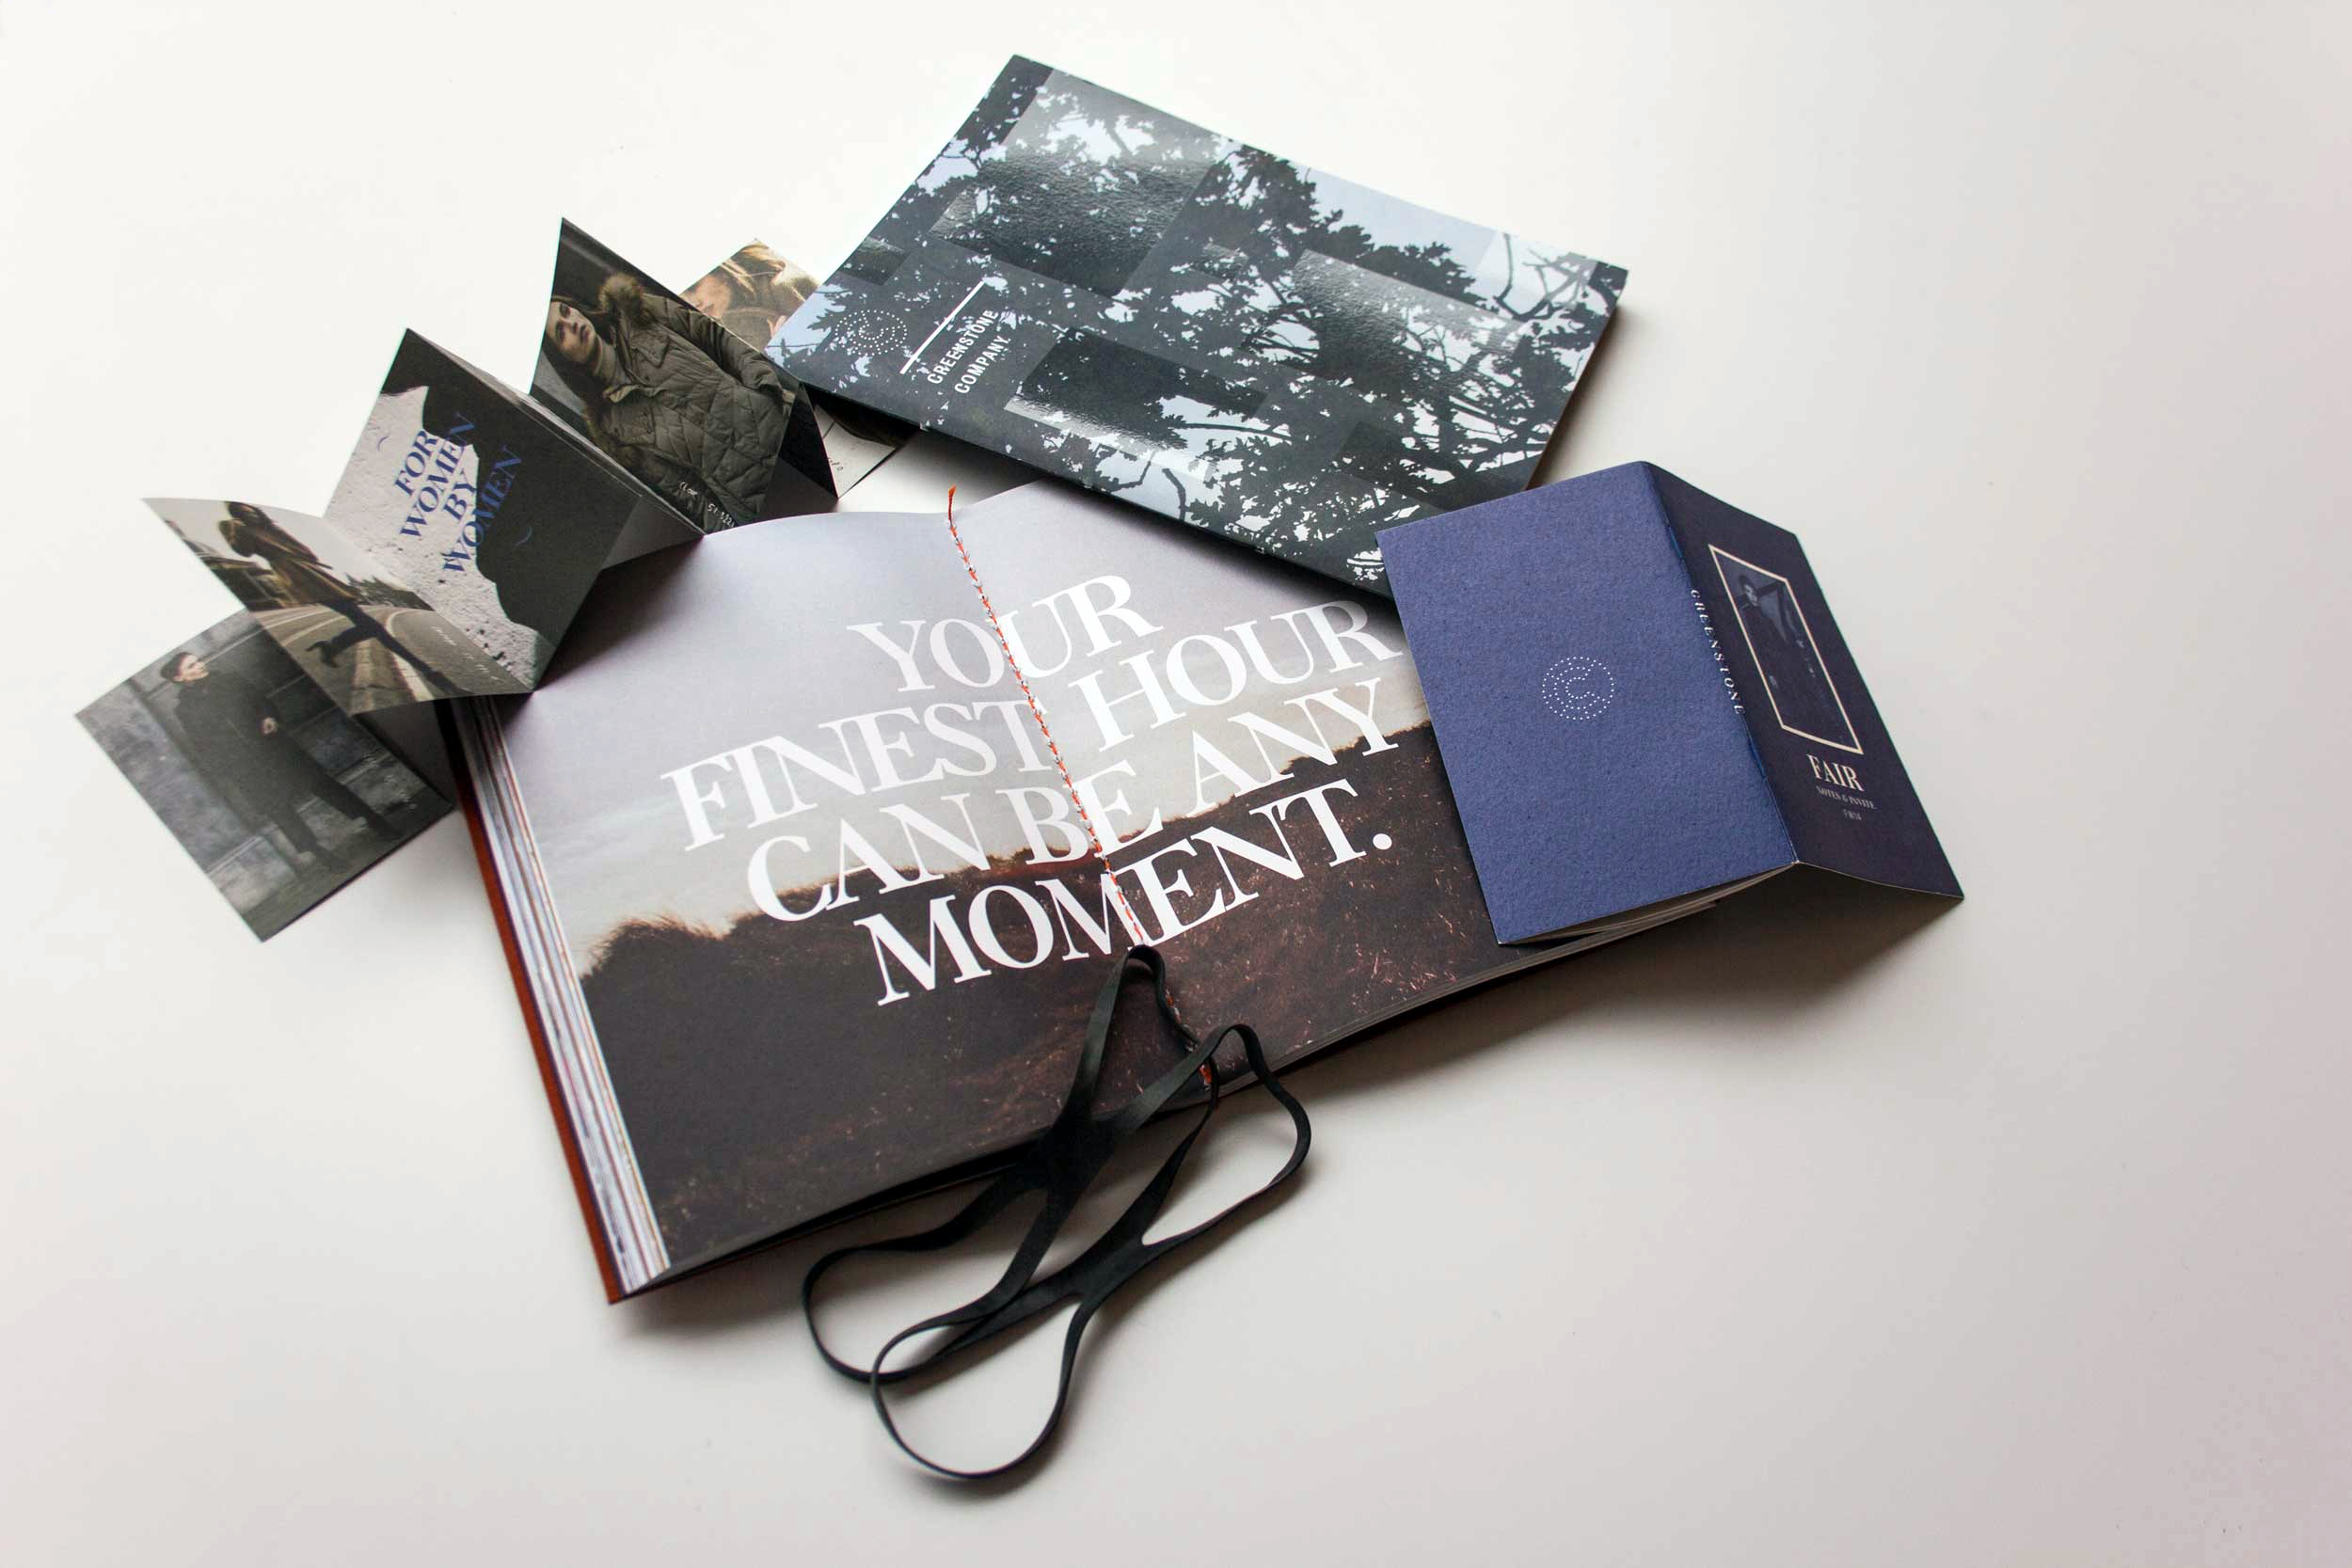 fig. 1. The brand book; different layers combined. Photo: nouch.com